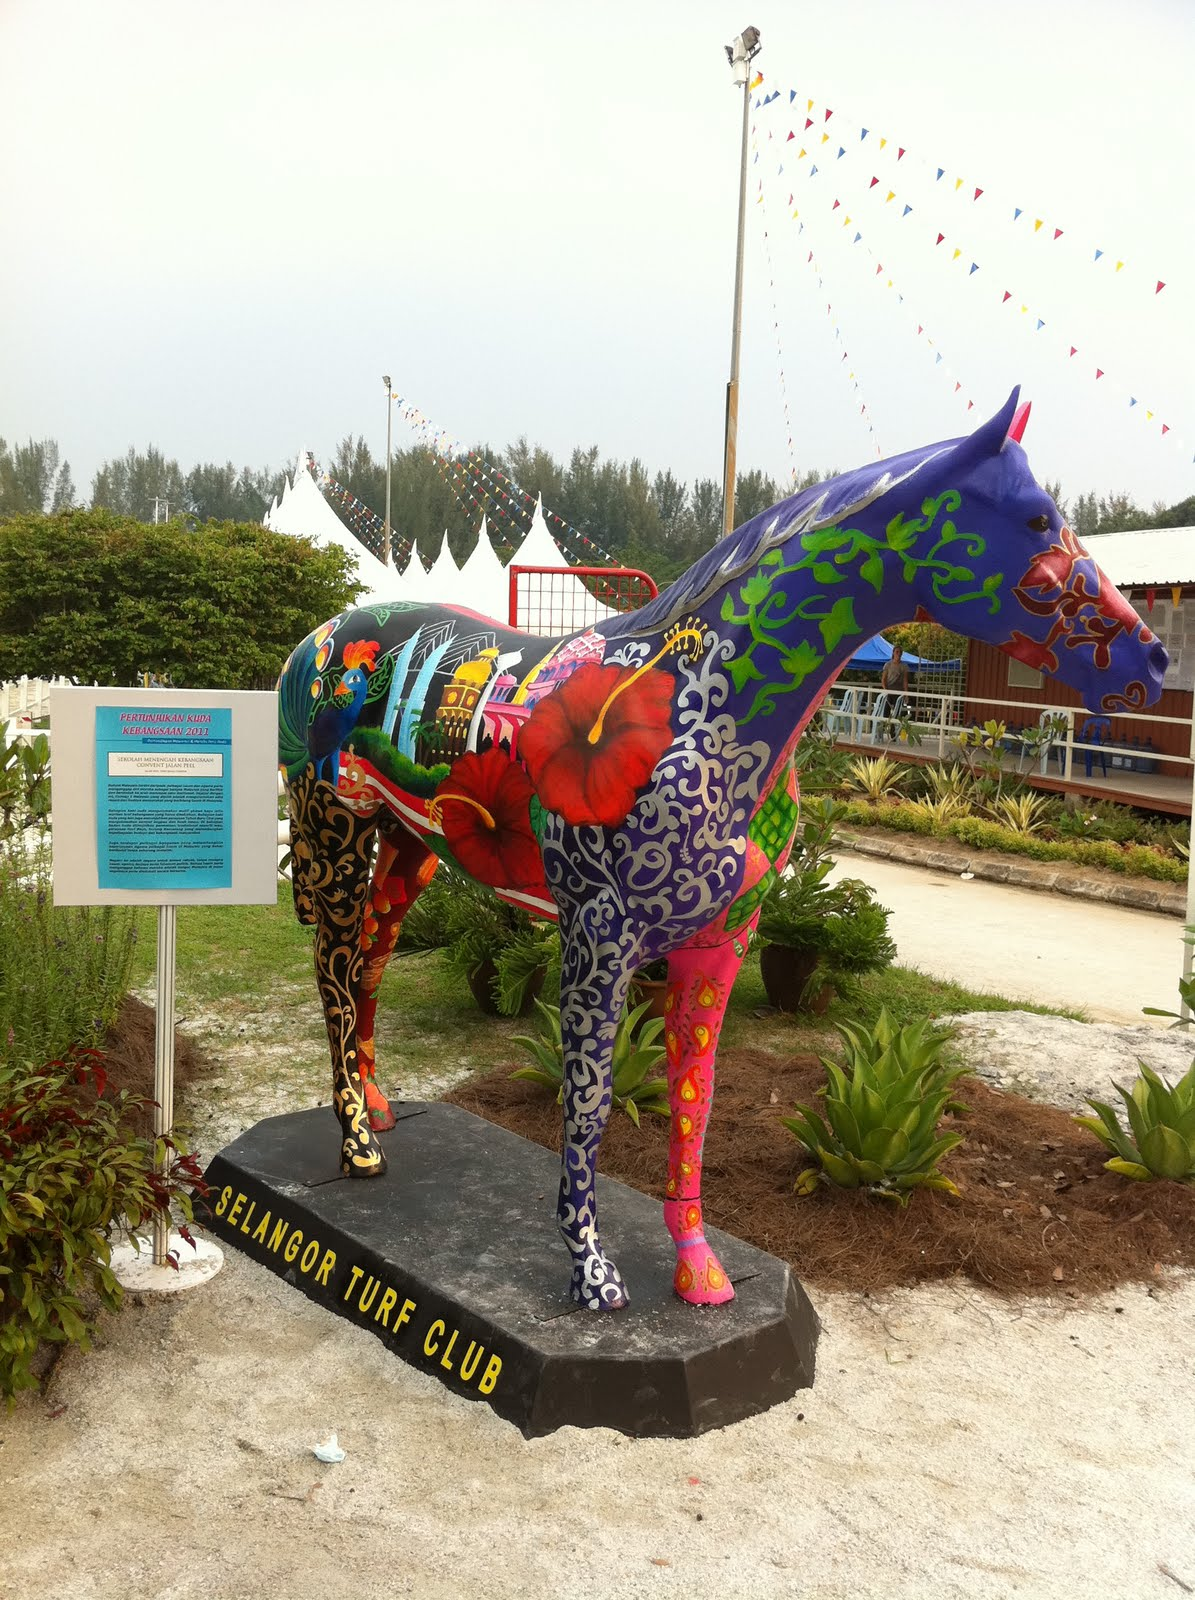 Horse statue painted with 1 malaysia concept